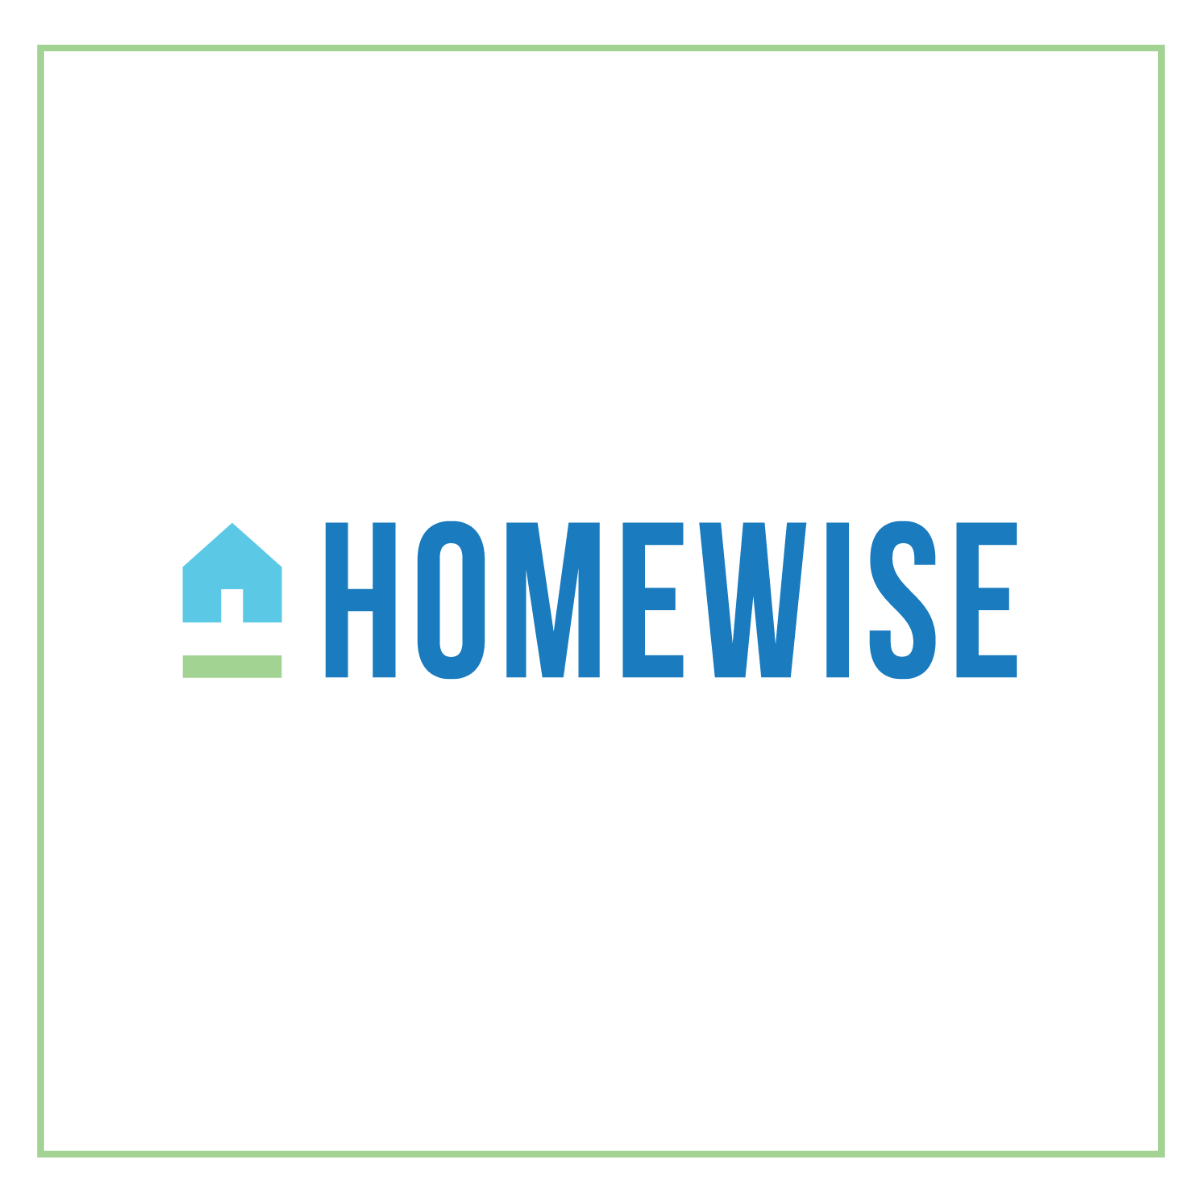 Homewise ⎯ Harnessing Technology to Help Canadians Become Homeowners